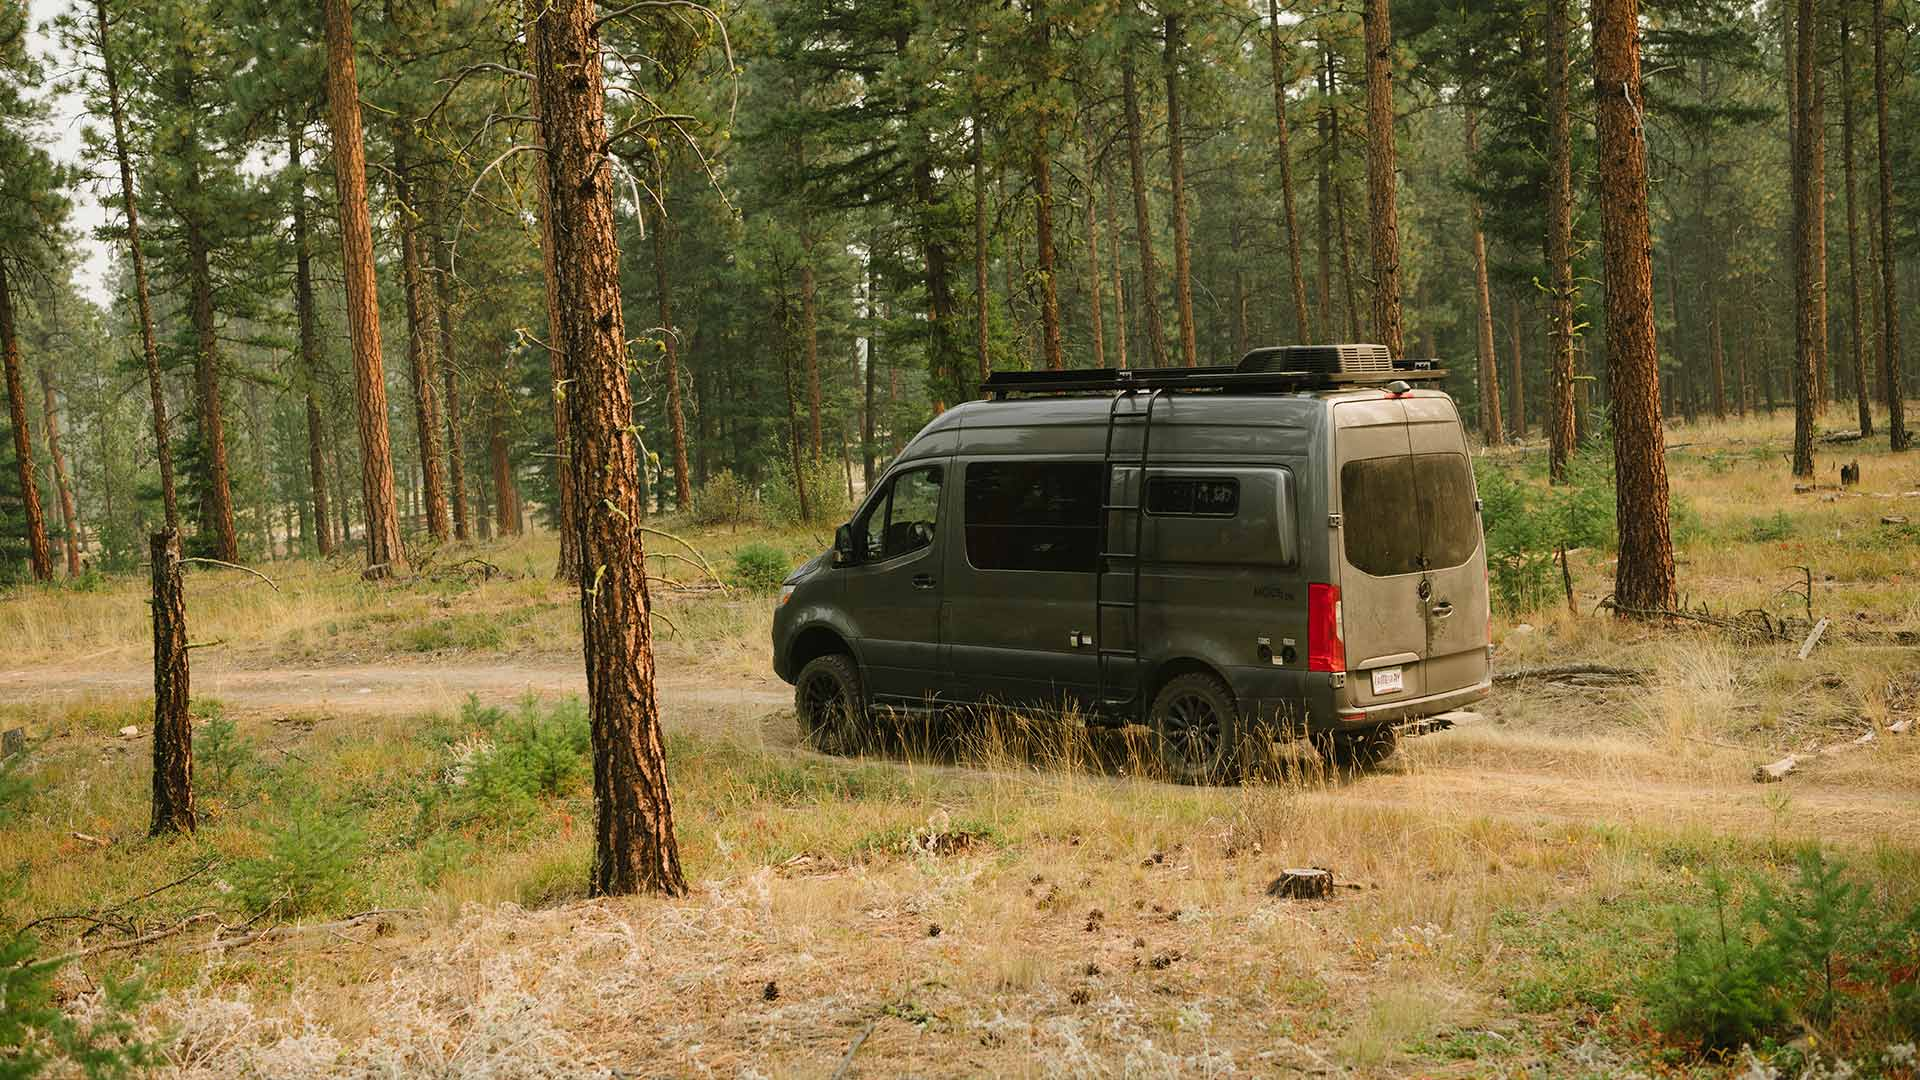 Using RV value guides for tips on reselling or trading your RV